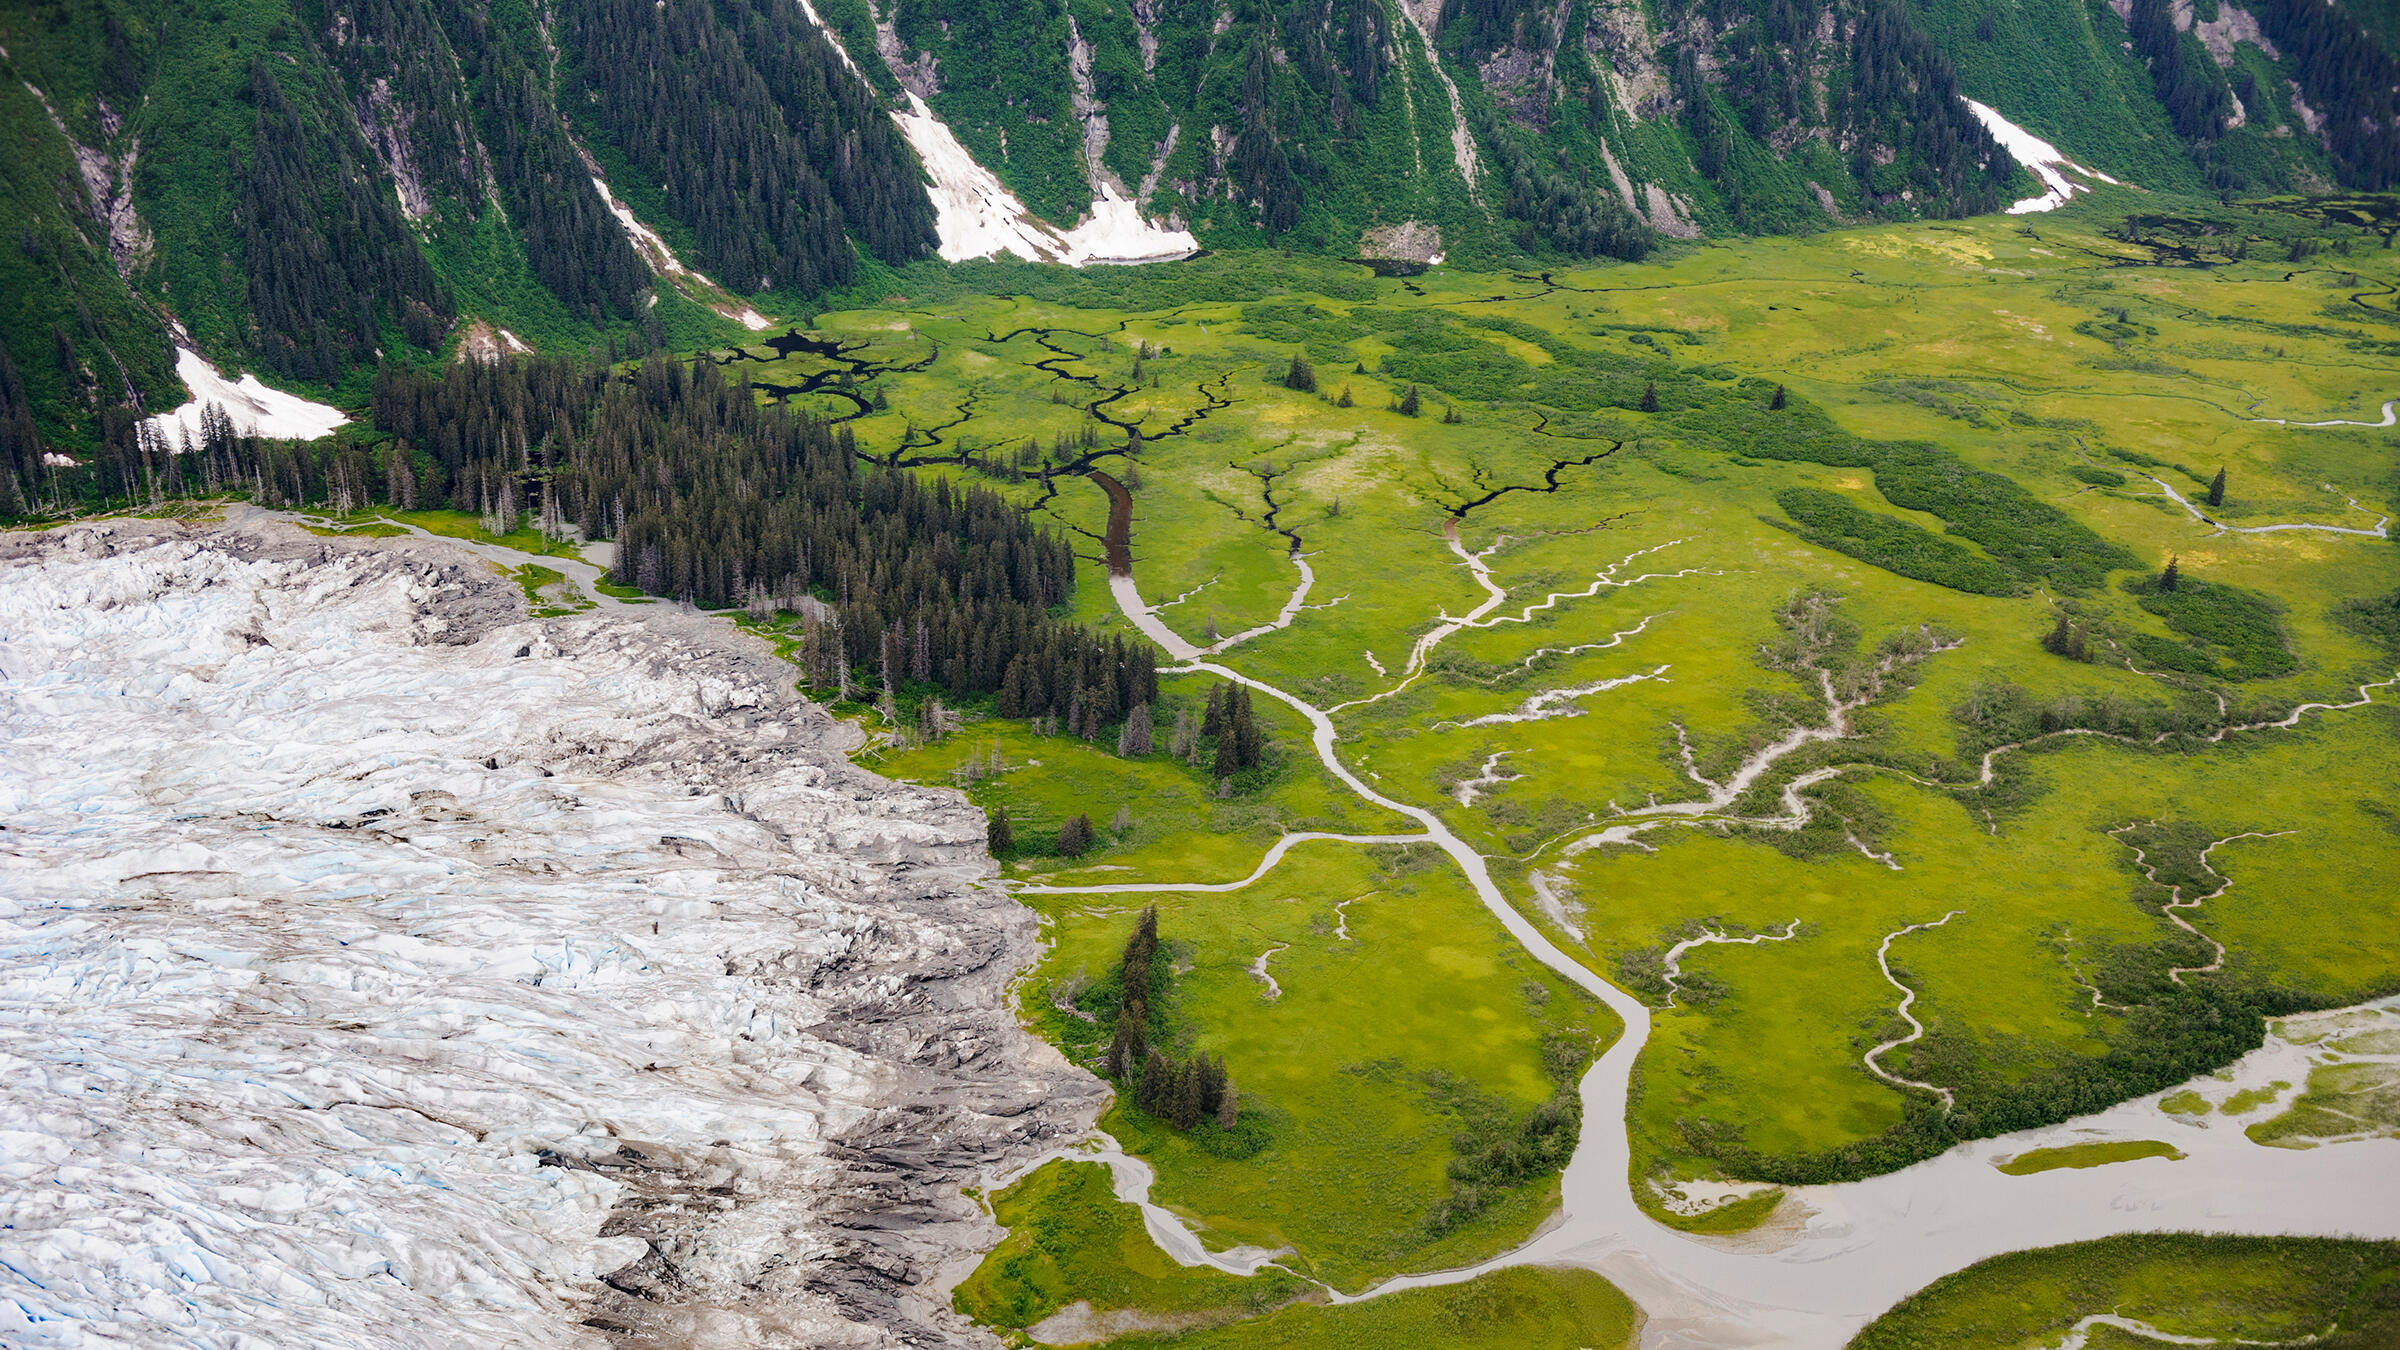 The 17 million acres of ancient trees, glaciers, valleys, and peat bogs in the Tongass offer up a habitat smorgasbord for the myriad species that live there. Mark Meyer